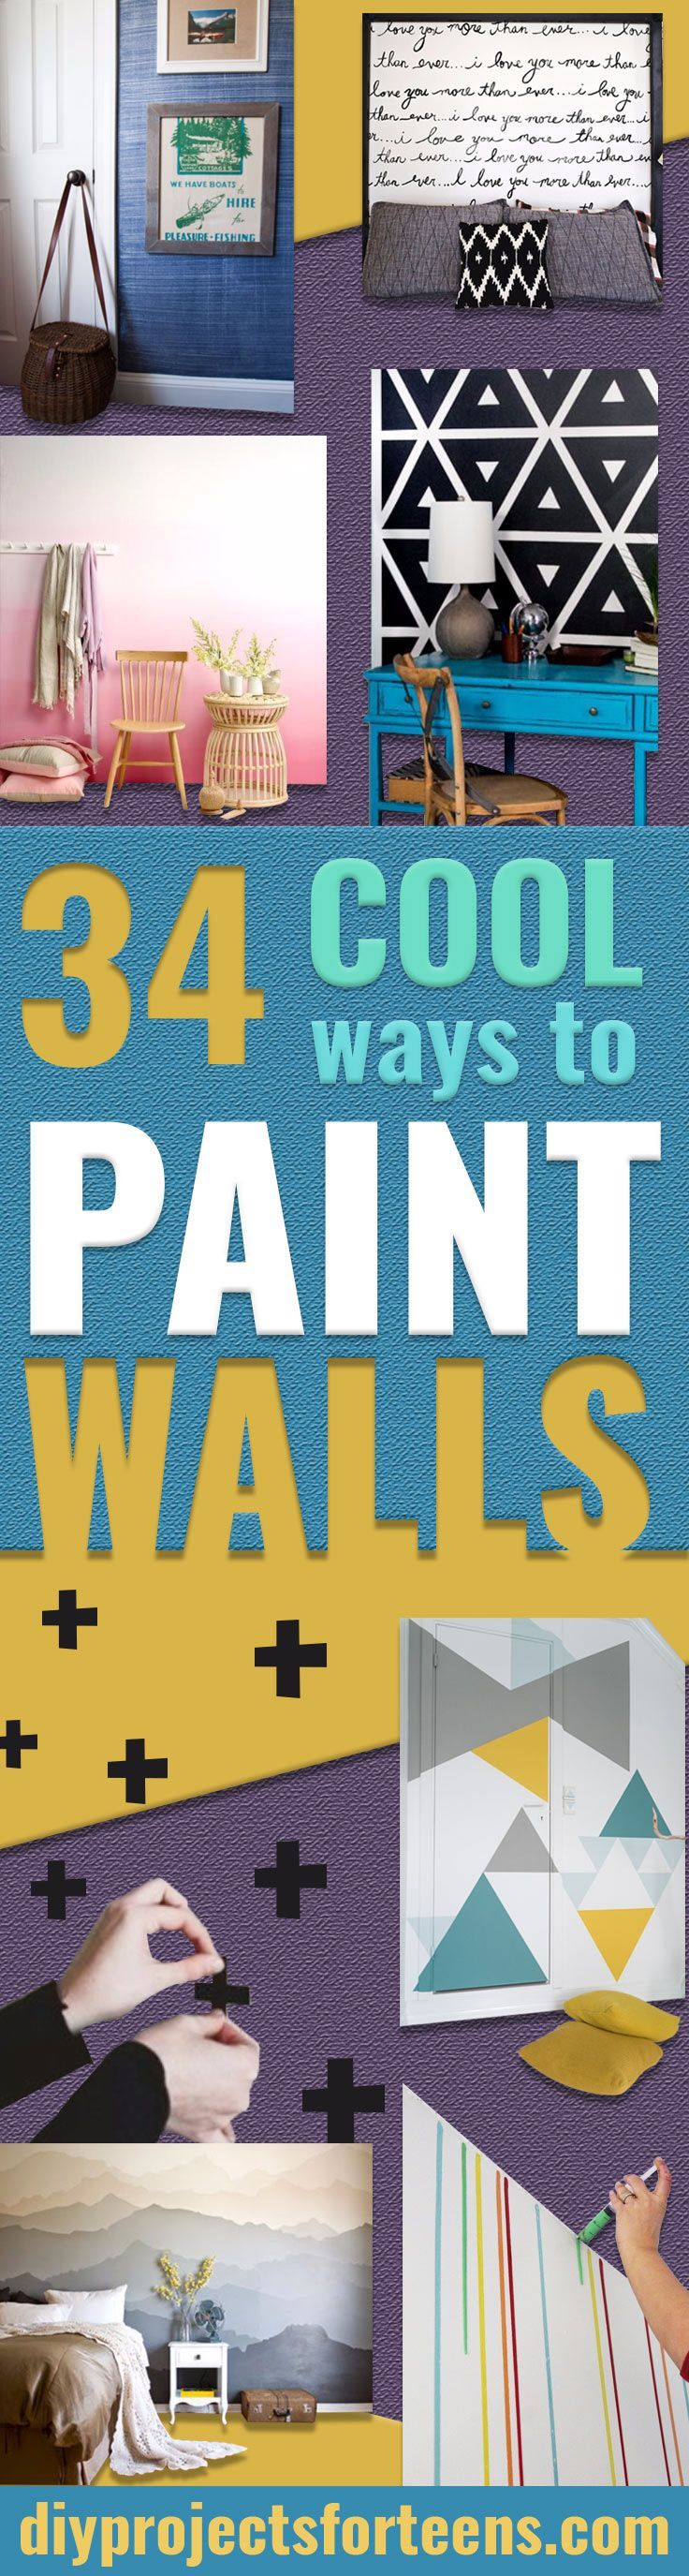 Best 25 stencils for painting ideas on pinterest wall 34 cool ways to paint walls amipublicfo Images